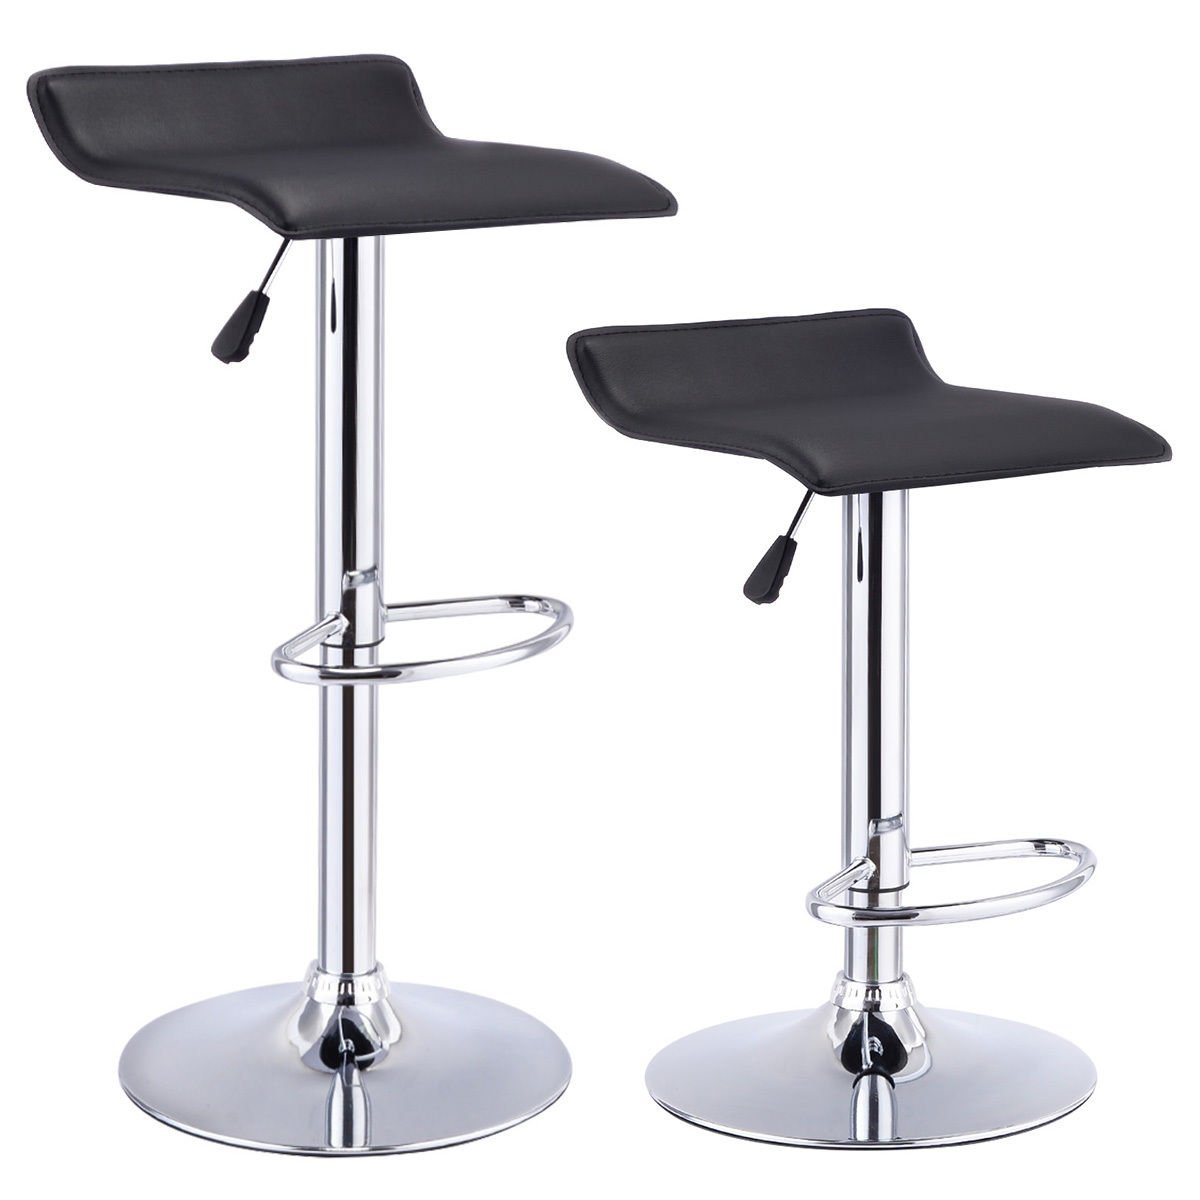 Amazon.com Costway Set Of 2 Swivel Bar Stools Adjustable PU Leather Backless Dining Chair (Black) Kitchen u0026 Dining  sc 1 st  Amazon.com & Amazon.com: Costway Set Of 2 Swivel Bar Stools Adjustable PU ... islam-shia.org